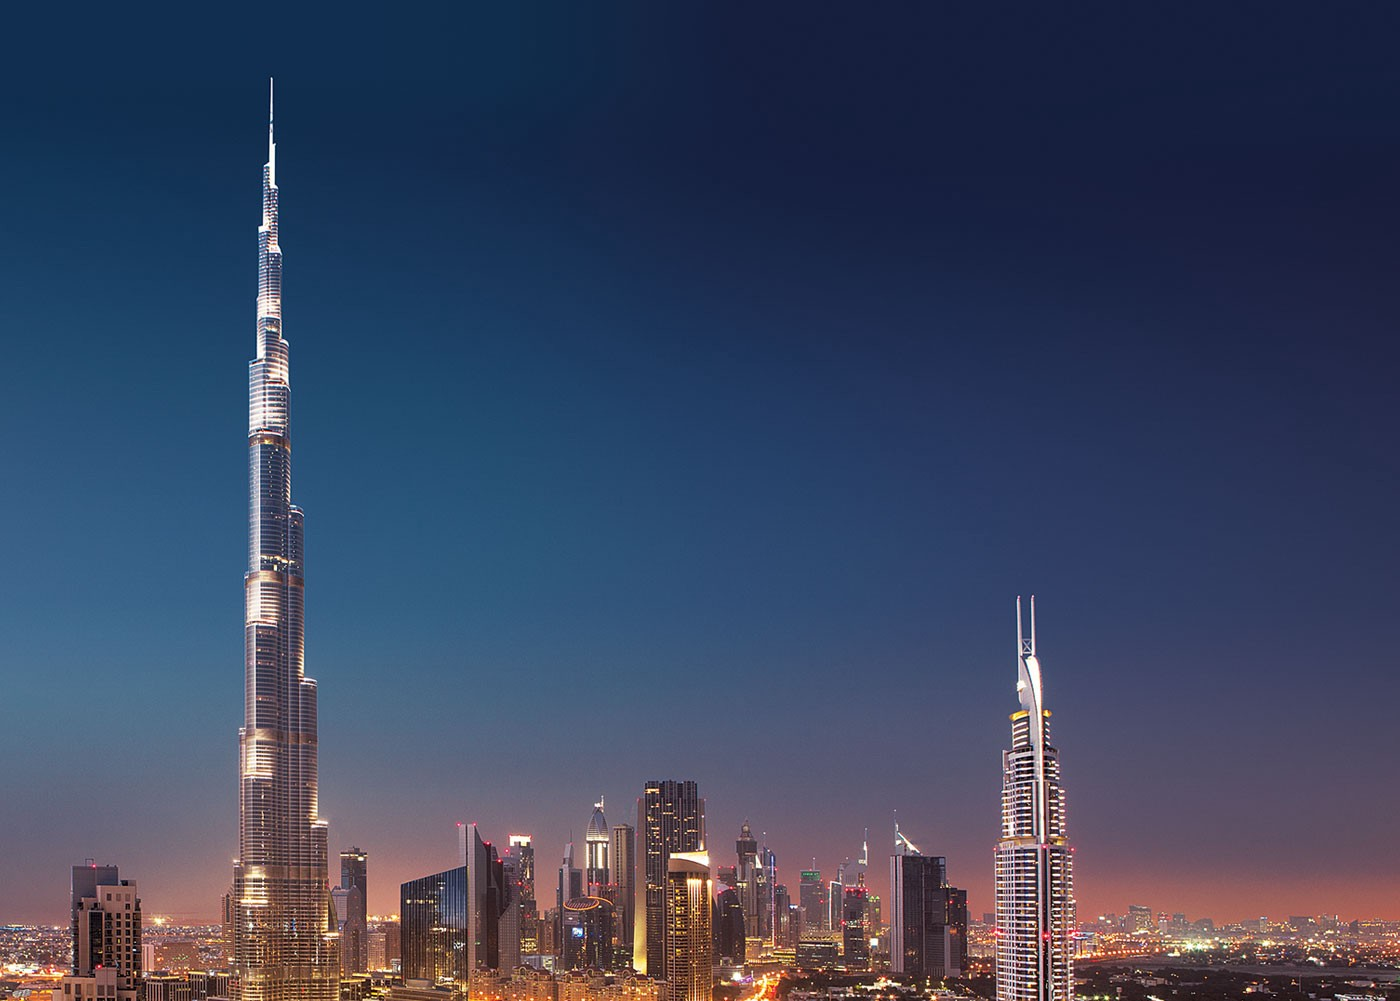 They Say Theyre Building Worlds Tallest >> Here Are The Top 11 Tallest Buildings In The World Right Now